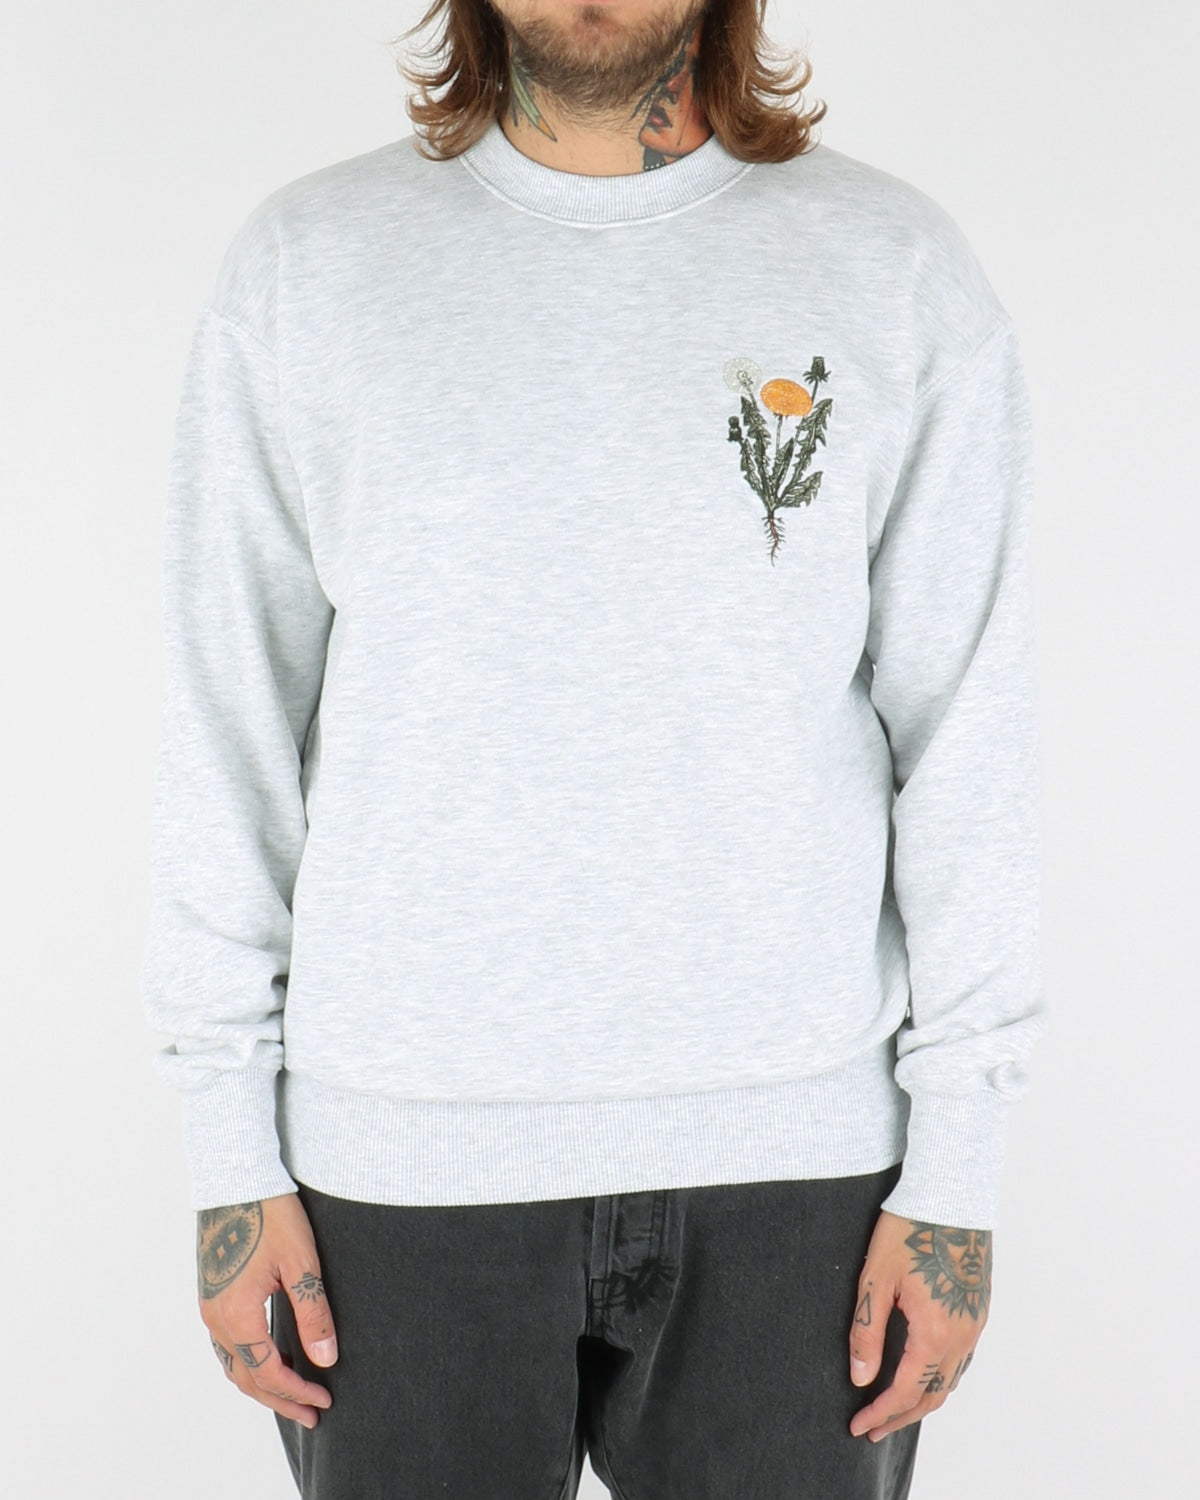 han kjobenhavn_casual crew sweatshirt flower_light grey_view_1_3